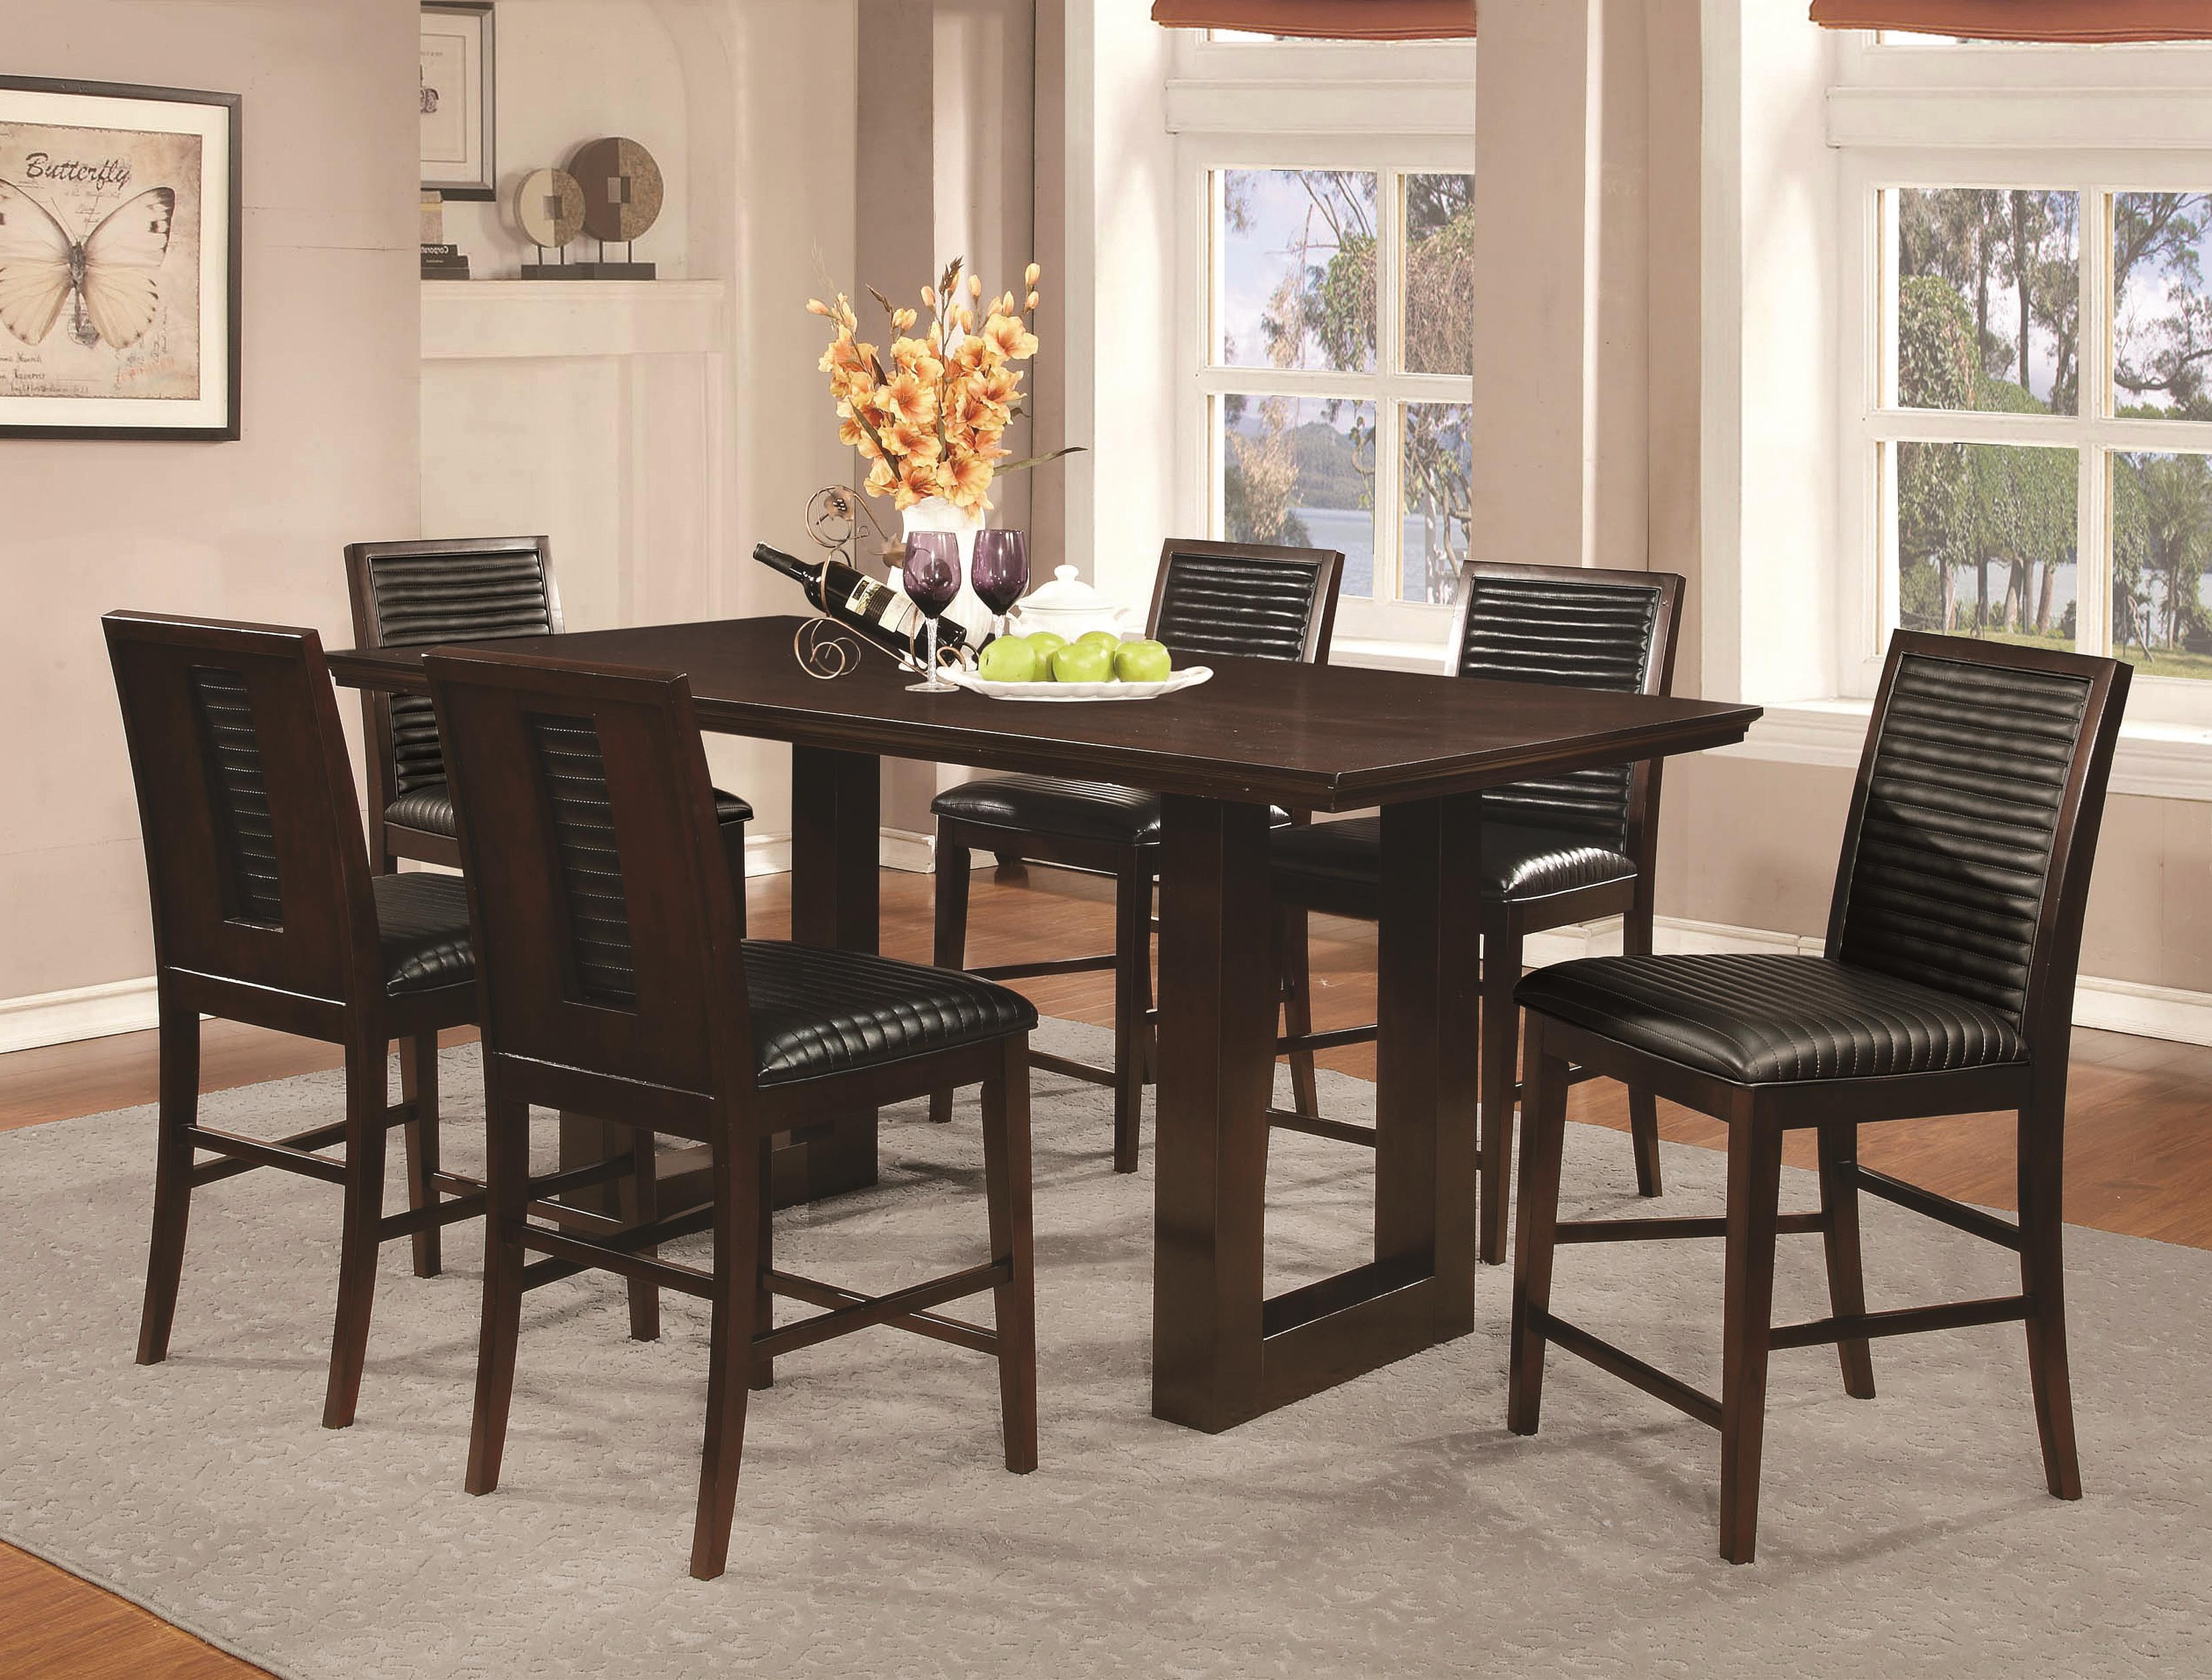 Coaster Chester 7 Piece Counter Height Table and Chairs Set - Item Number: 105728+6x7